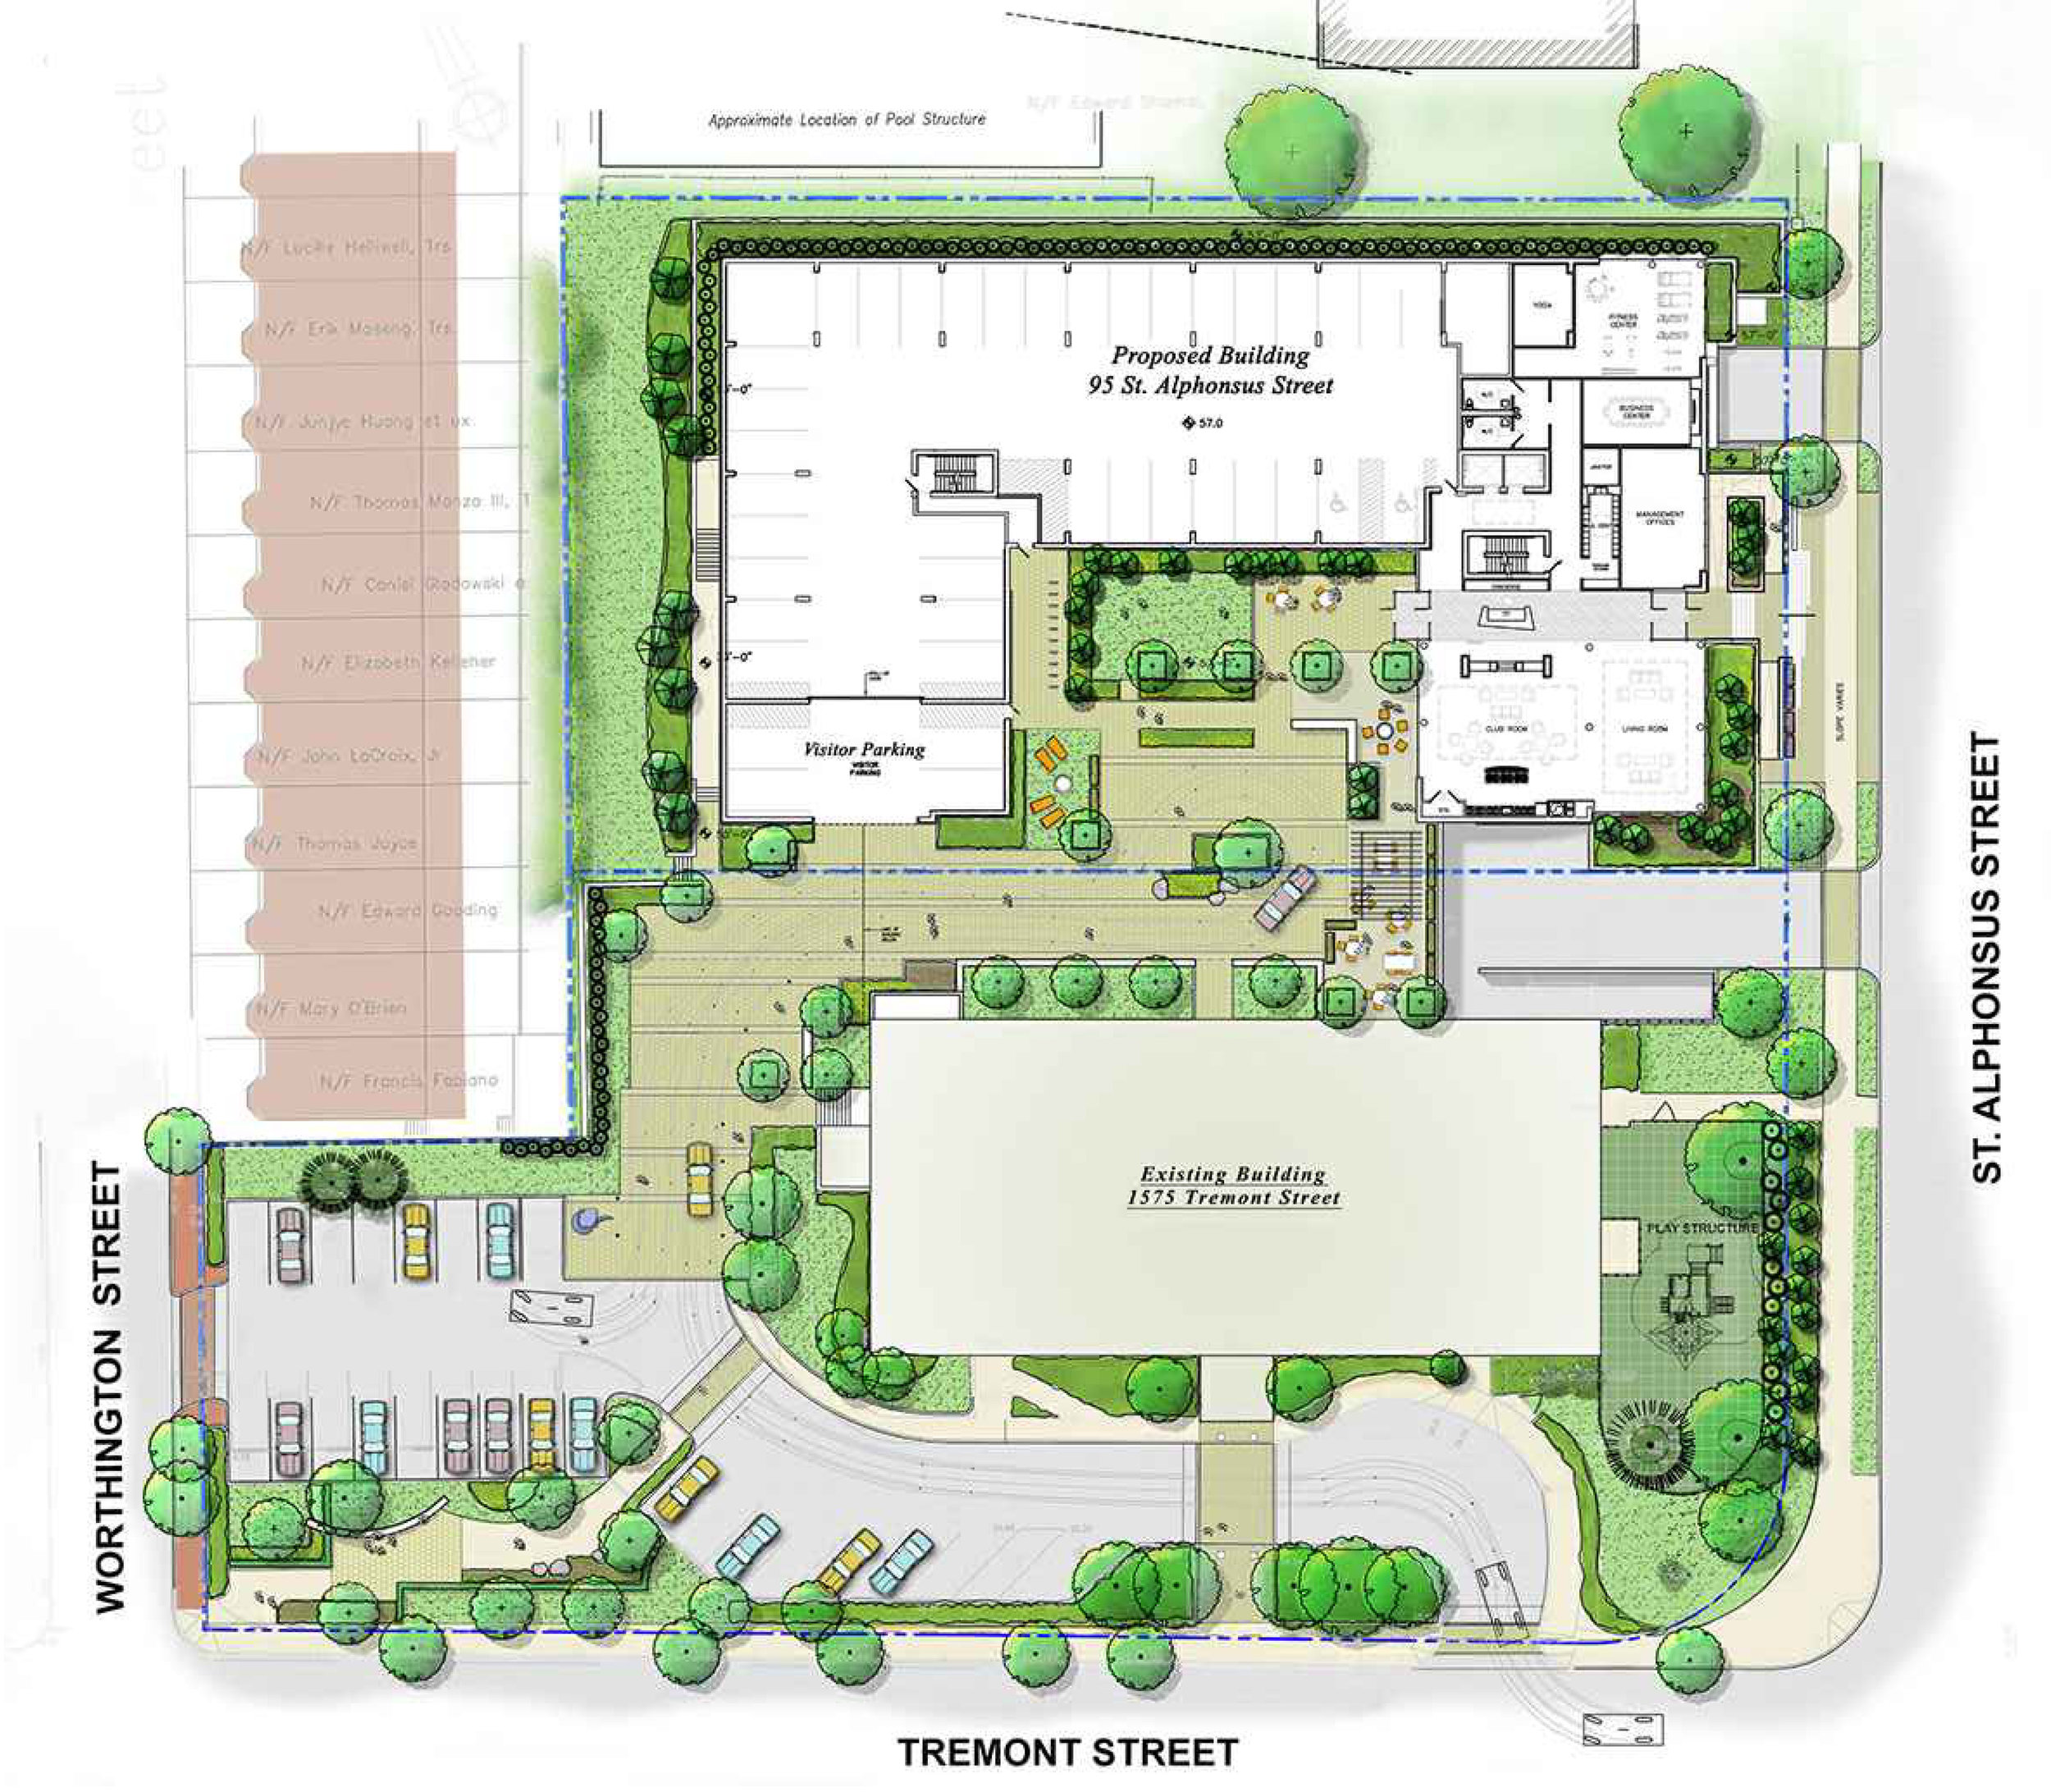 95 Saint Alphonsus_Proposed Site Plan.jpg